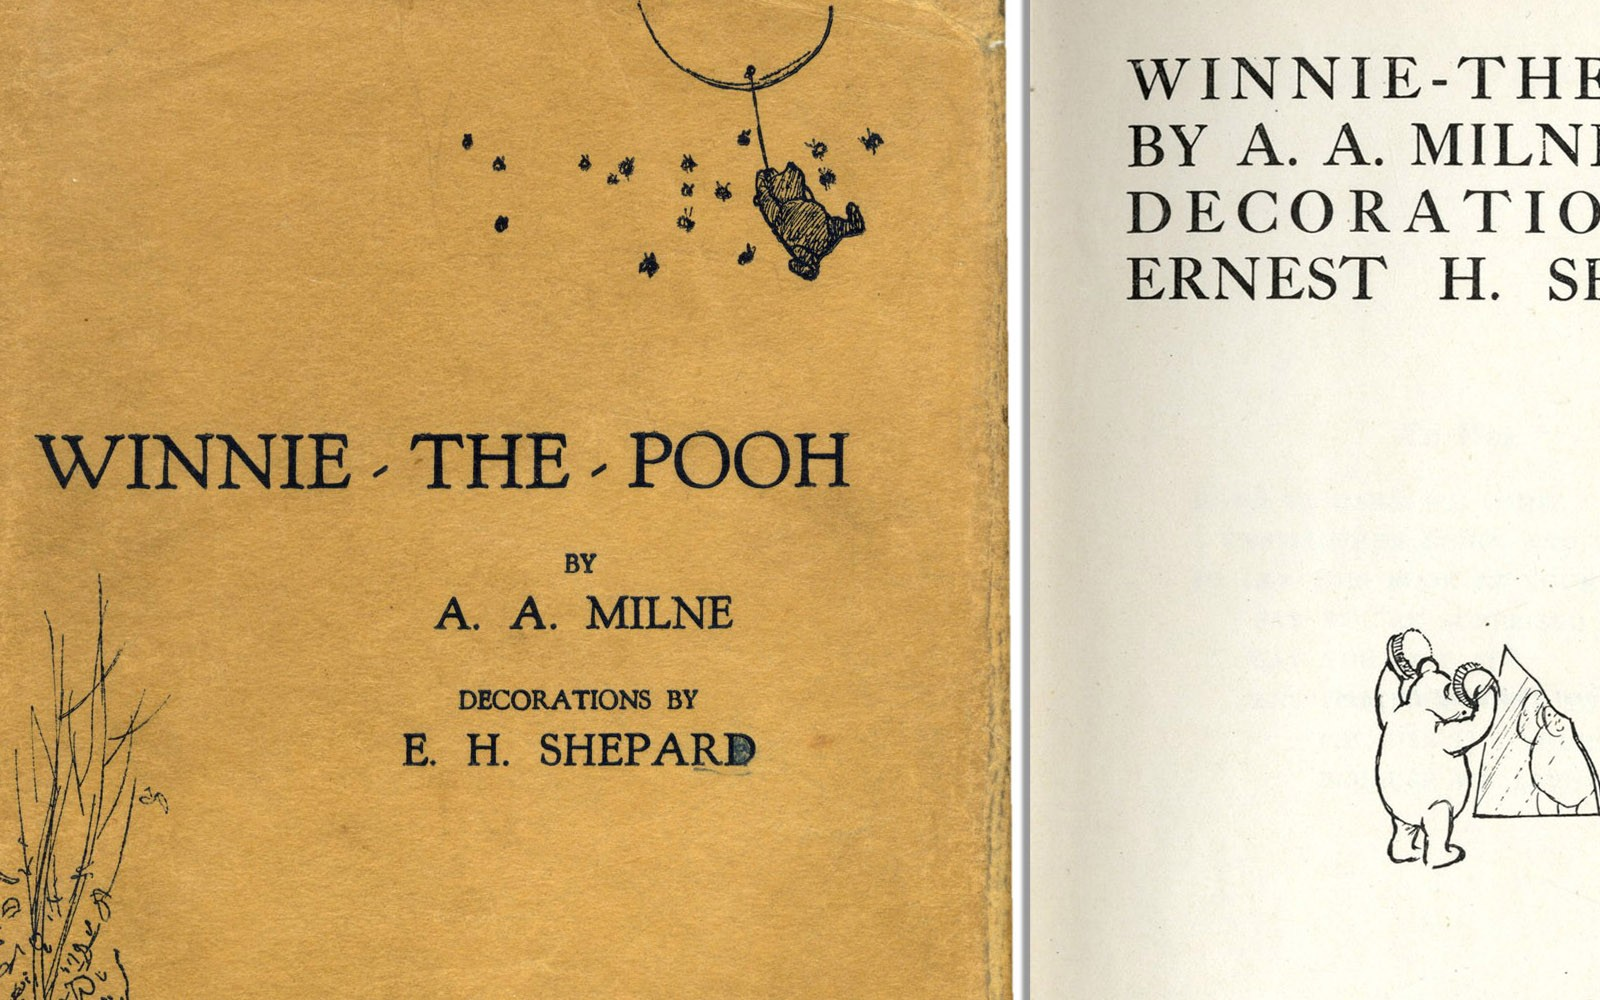 Amazing 30 Surprisingly Insightful Winnie The Pooh Quotes That Will Change Your Life